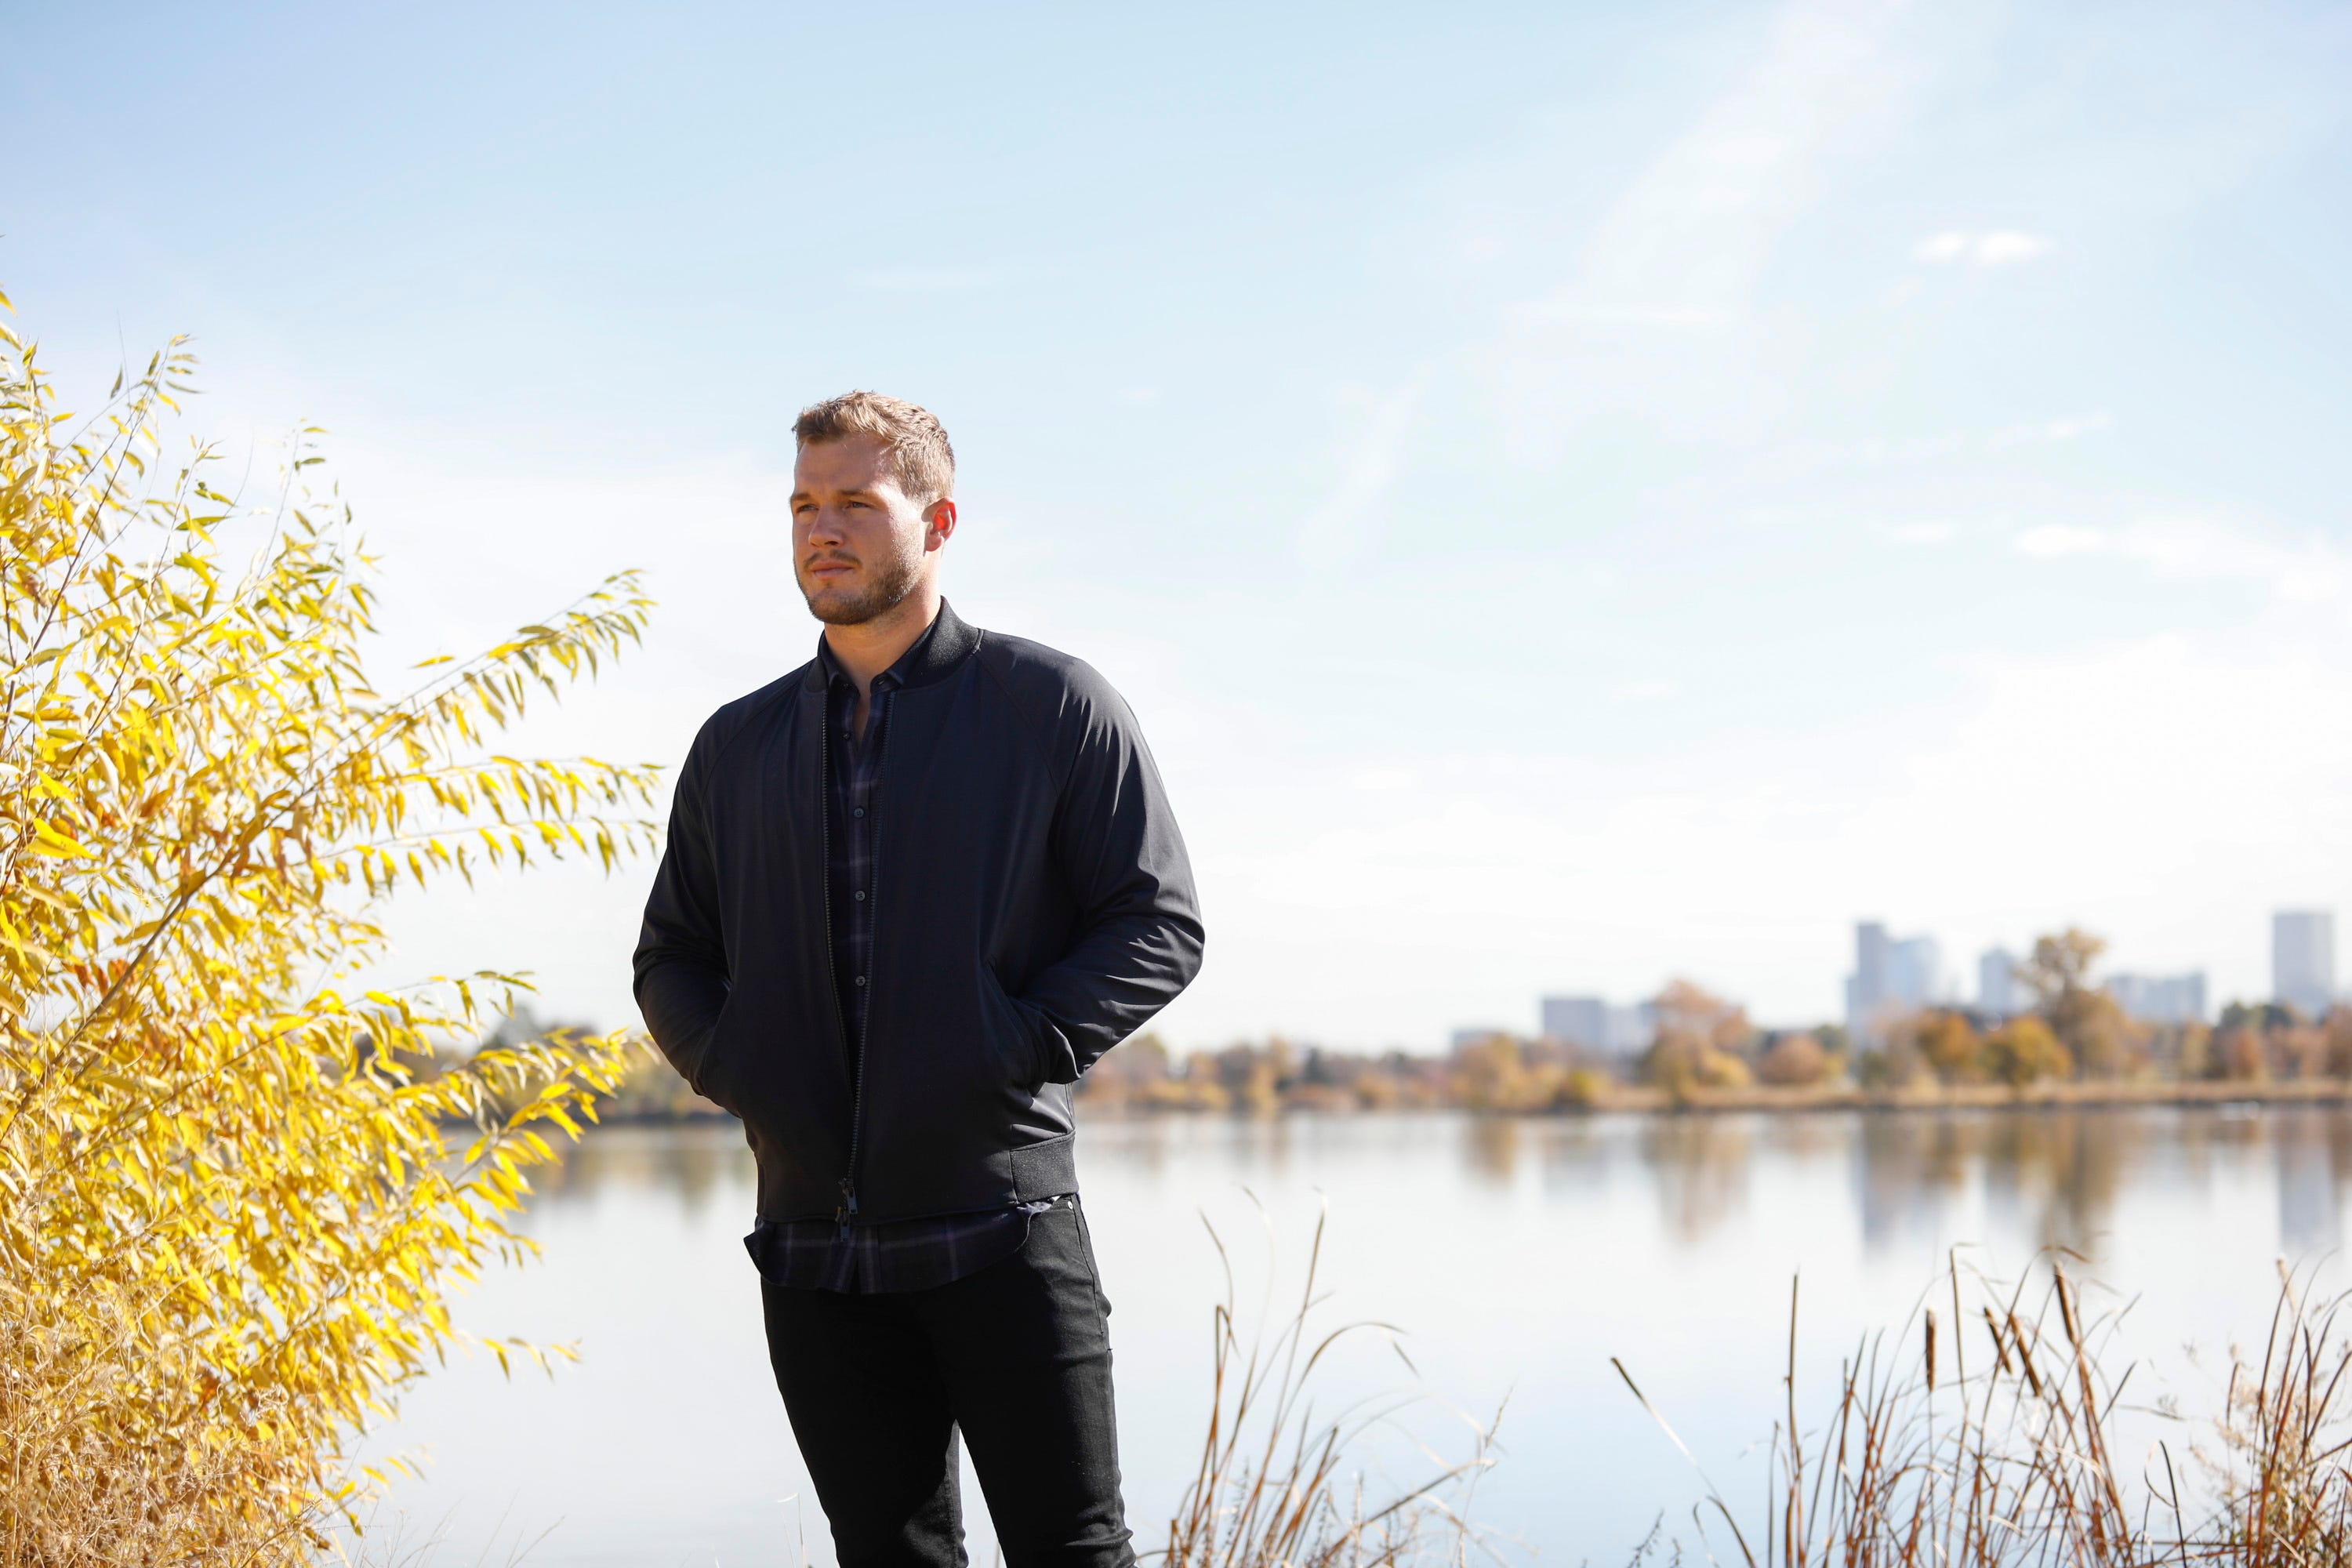 'Bachelor' Colton Underwood says 'I'm done with this' in finale sneak peek